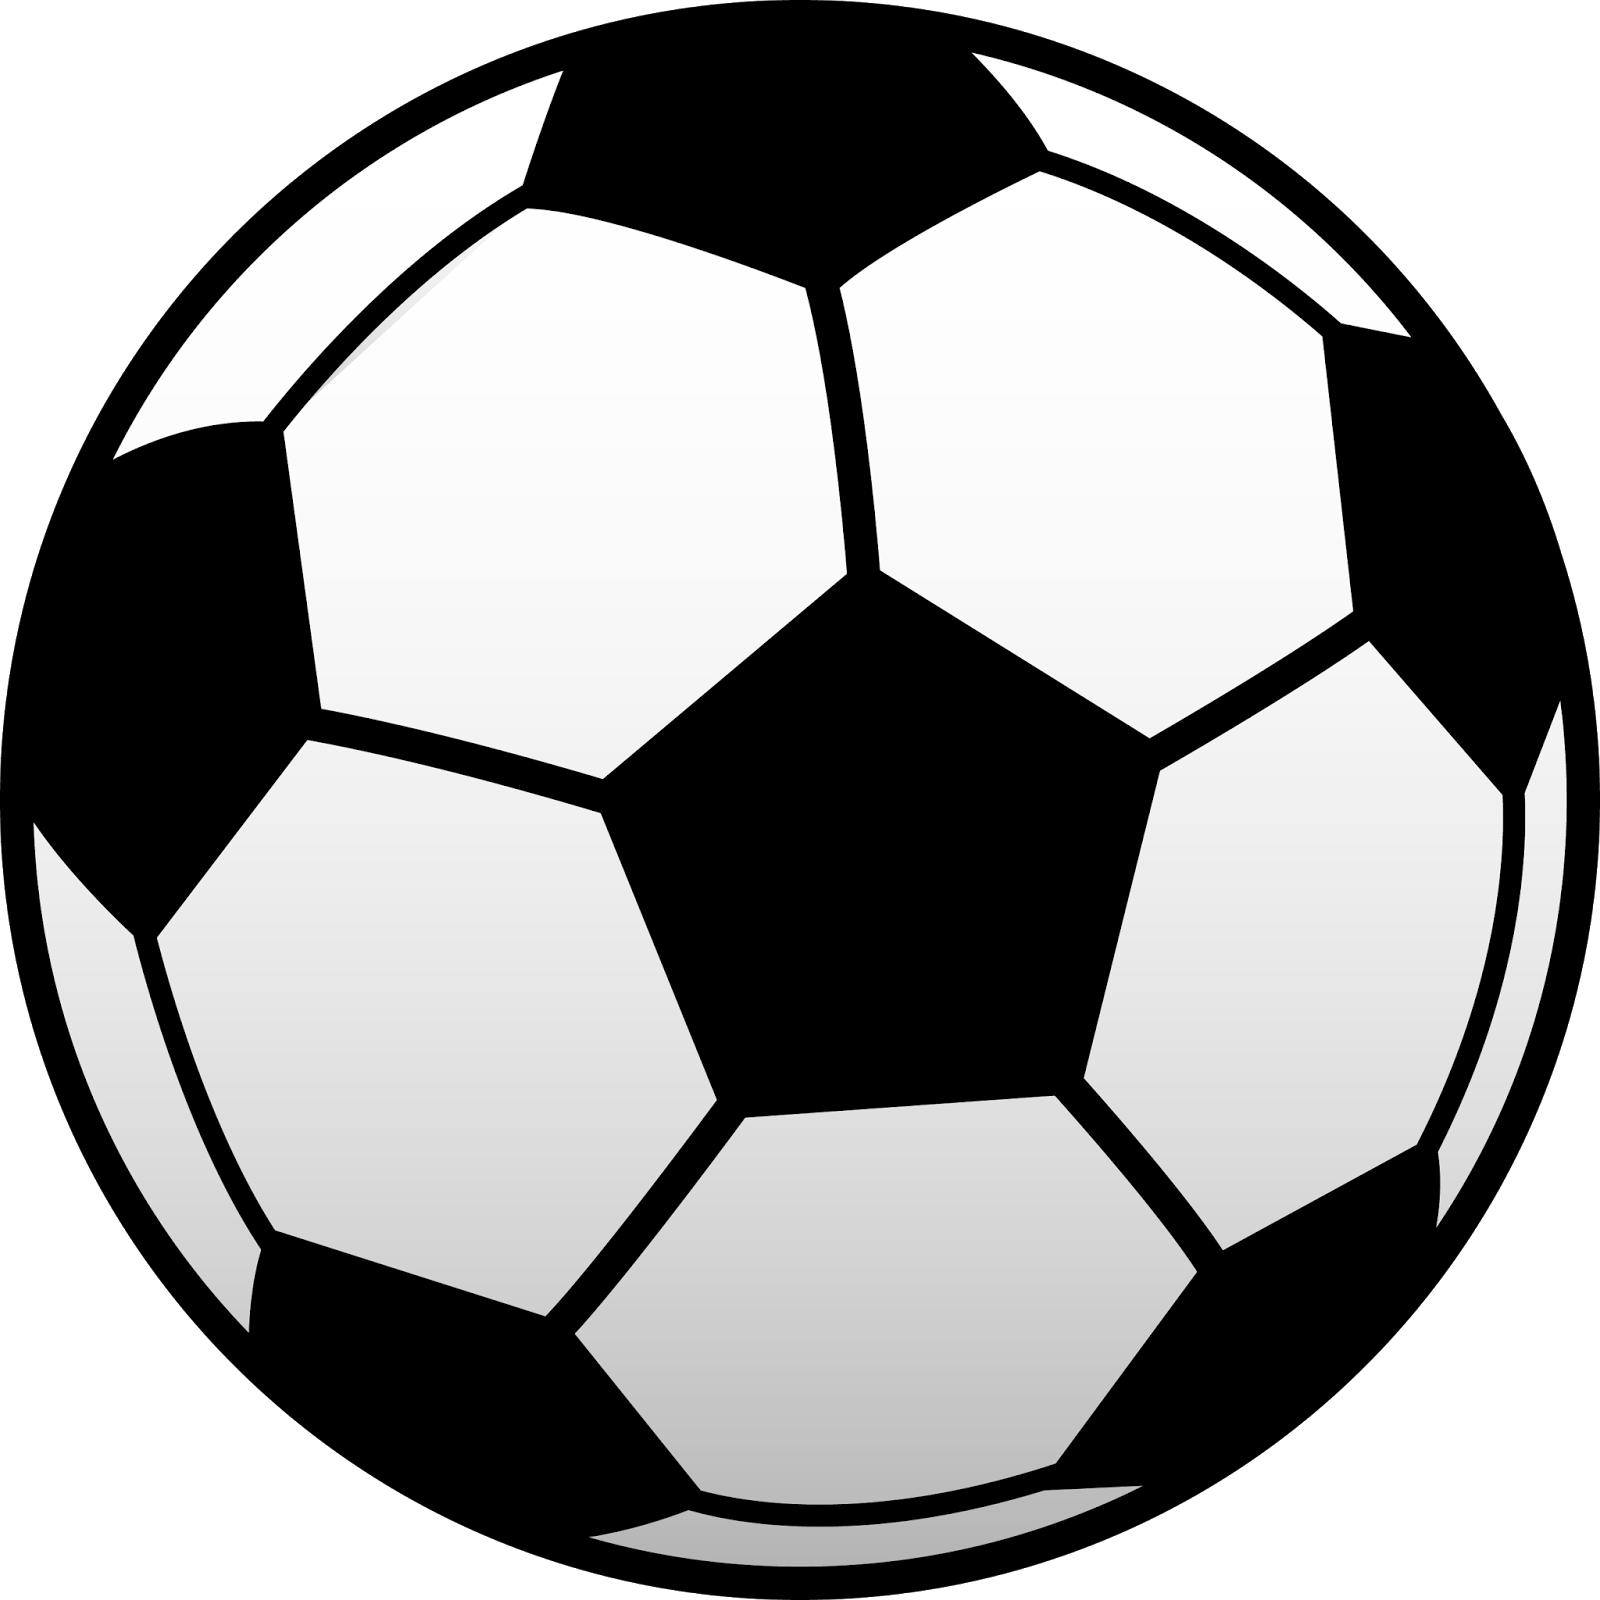 Football clipart no background.